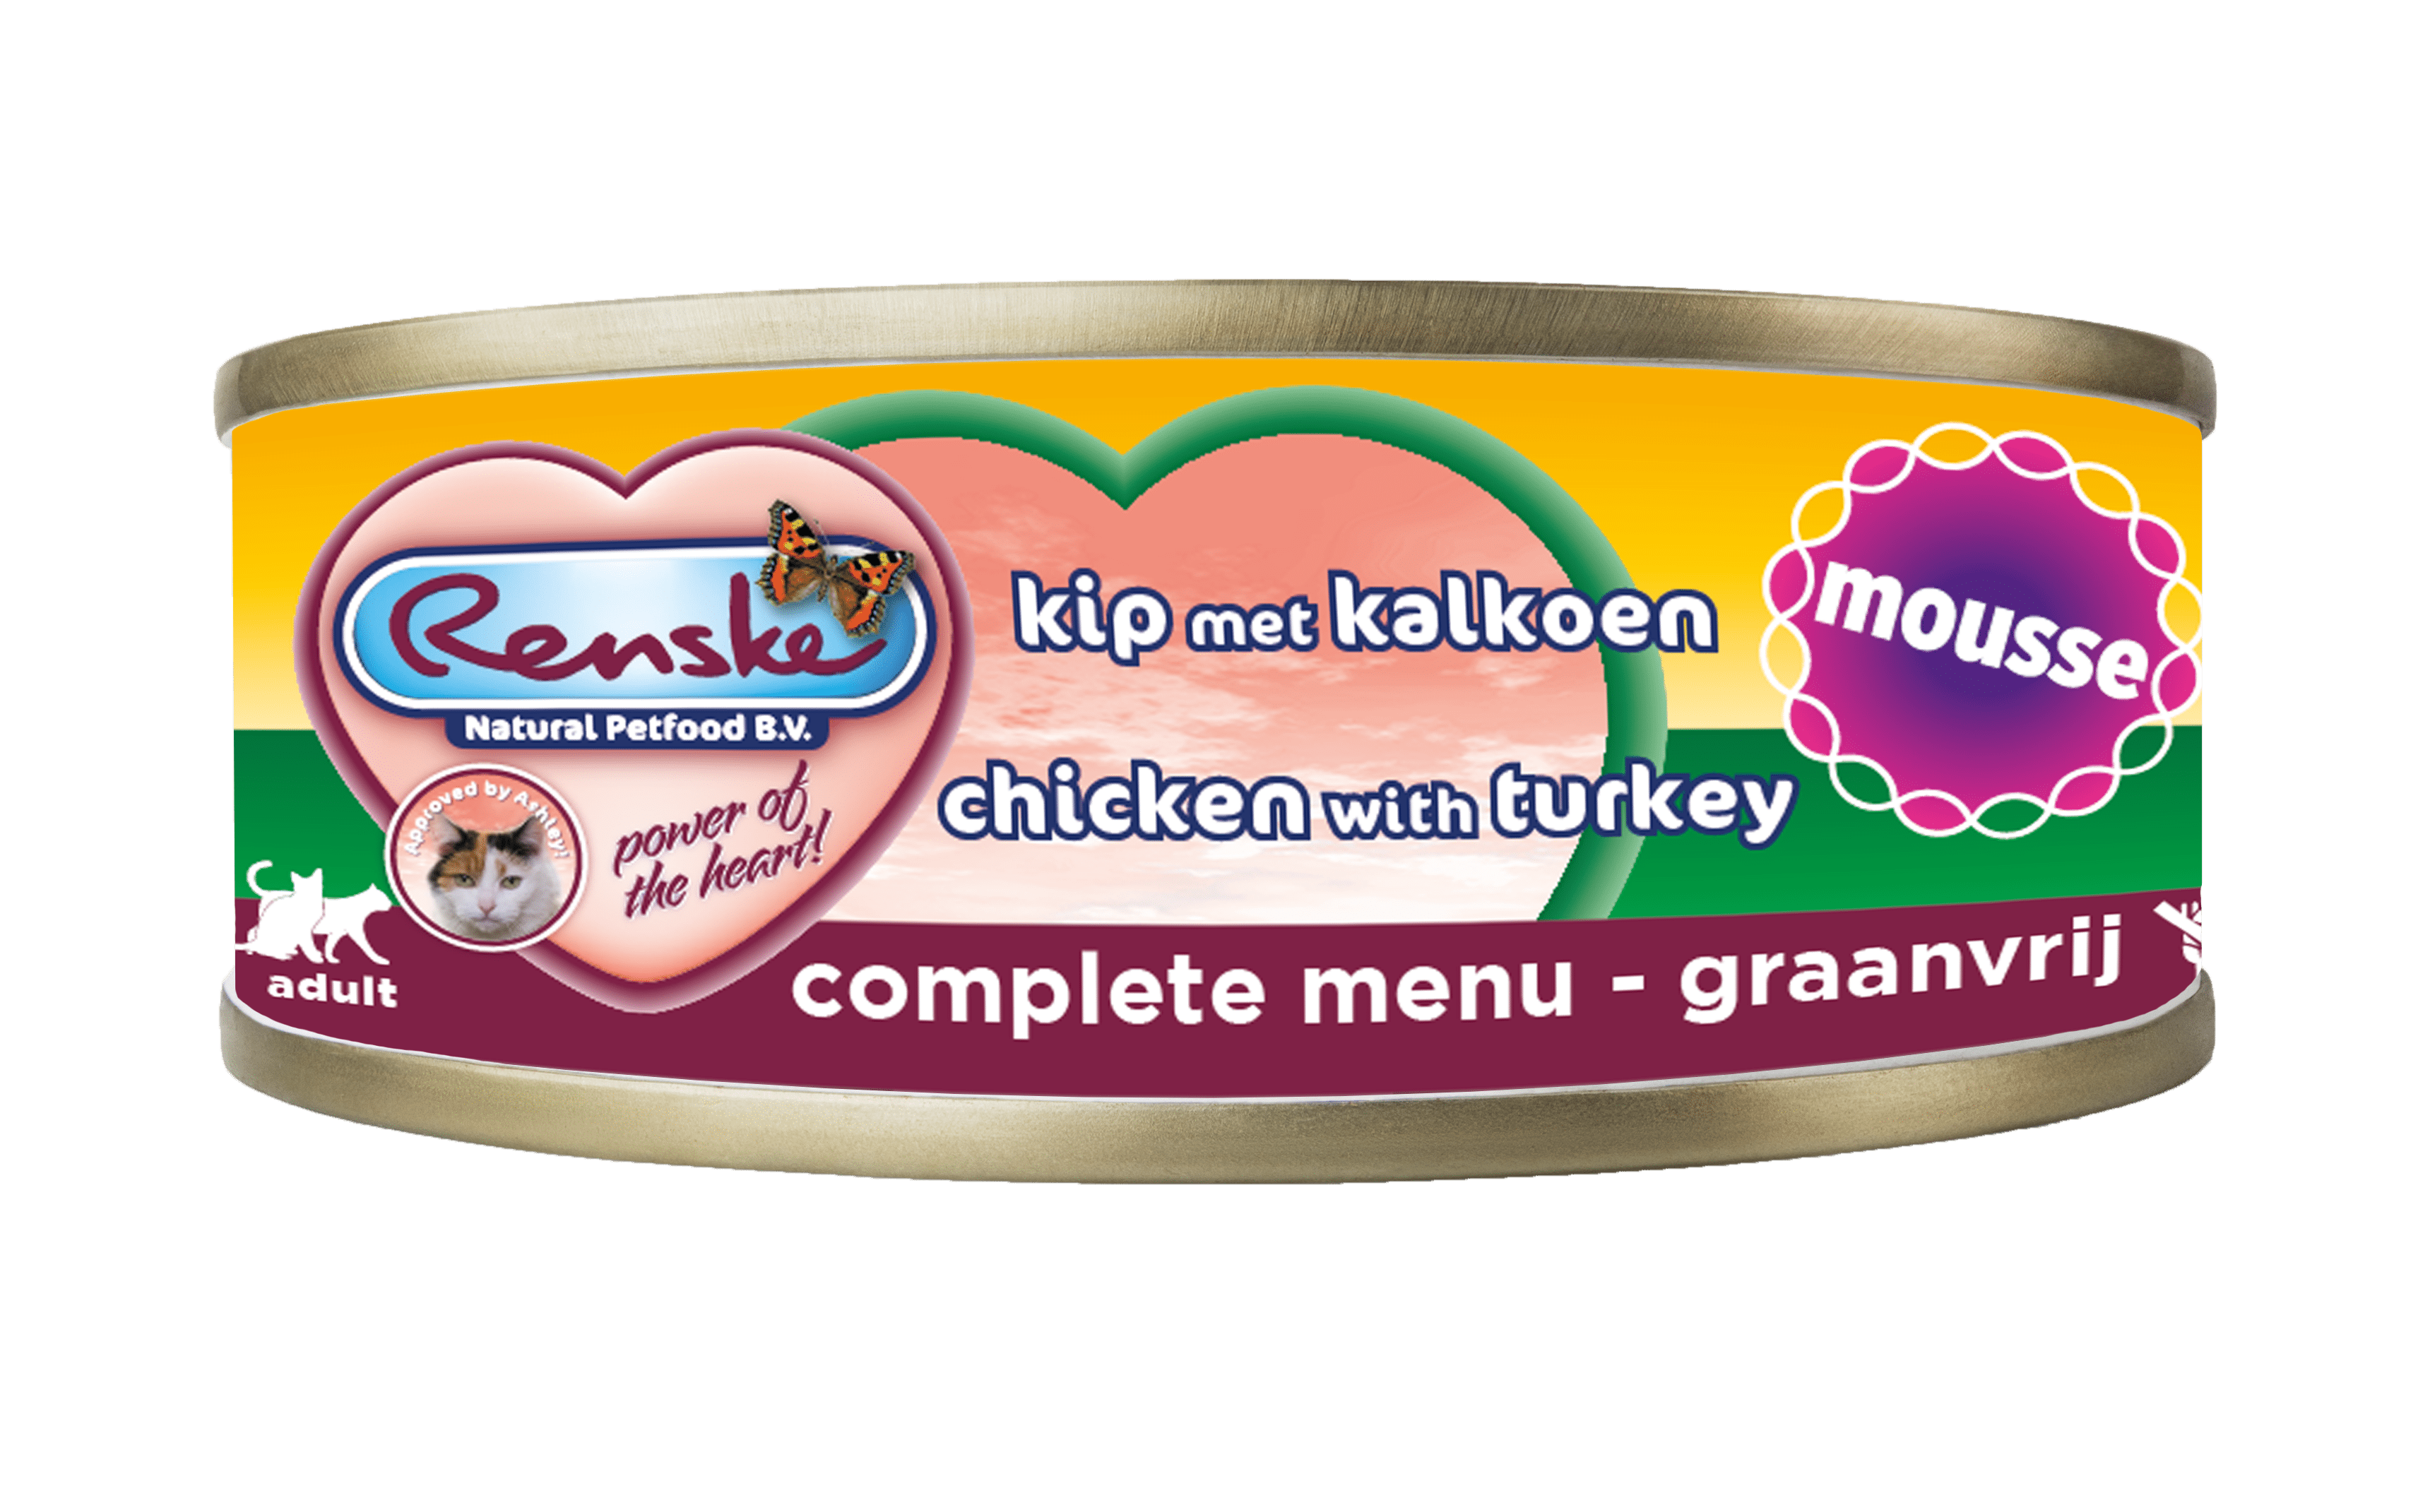 renske-70g-kat-kip-met-kalkoen-mousse-productfoto_optimized